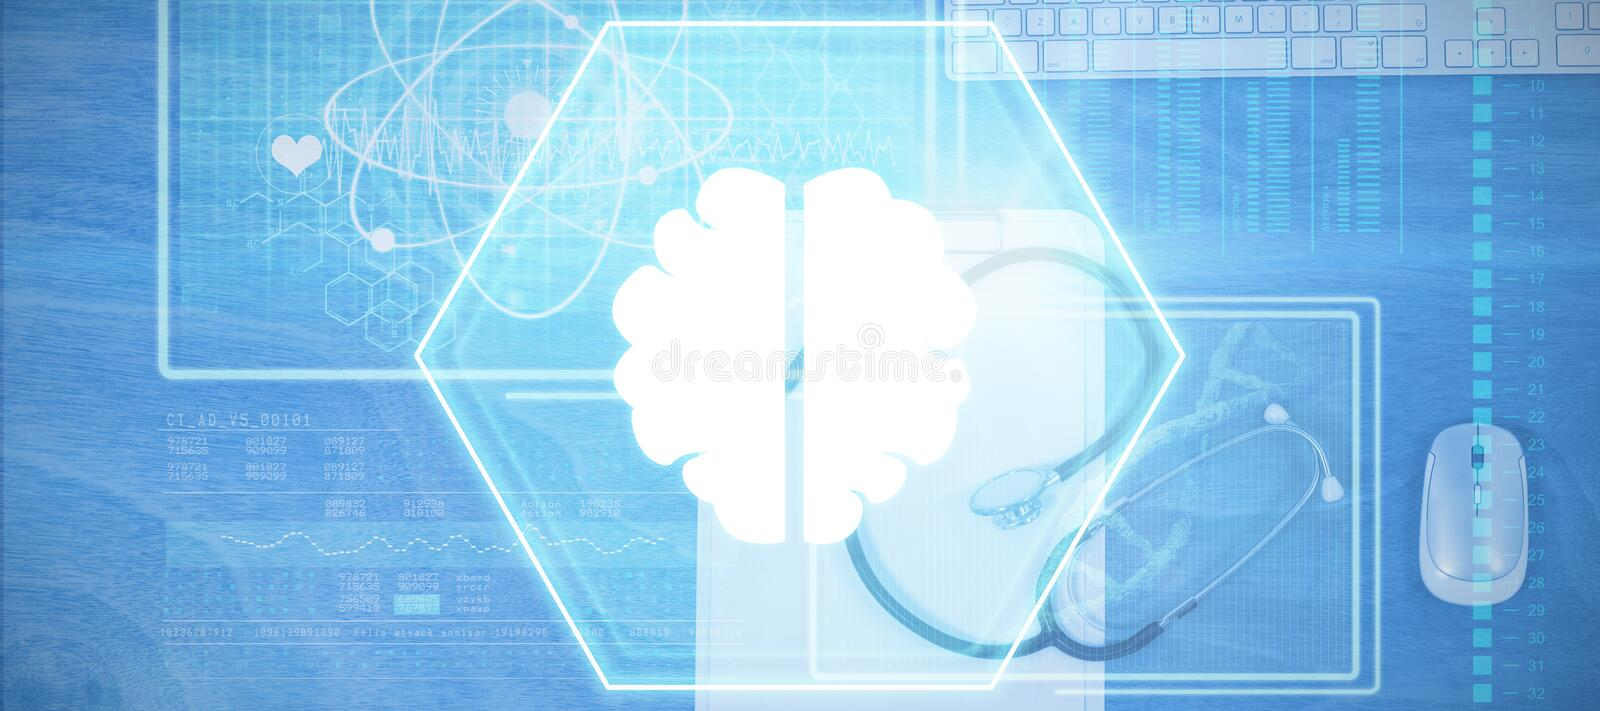 Composite image of brain. Brain against clipboard with keyboard and mouse on table stock illustration